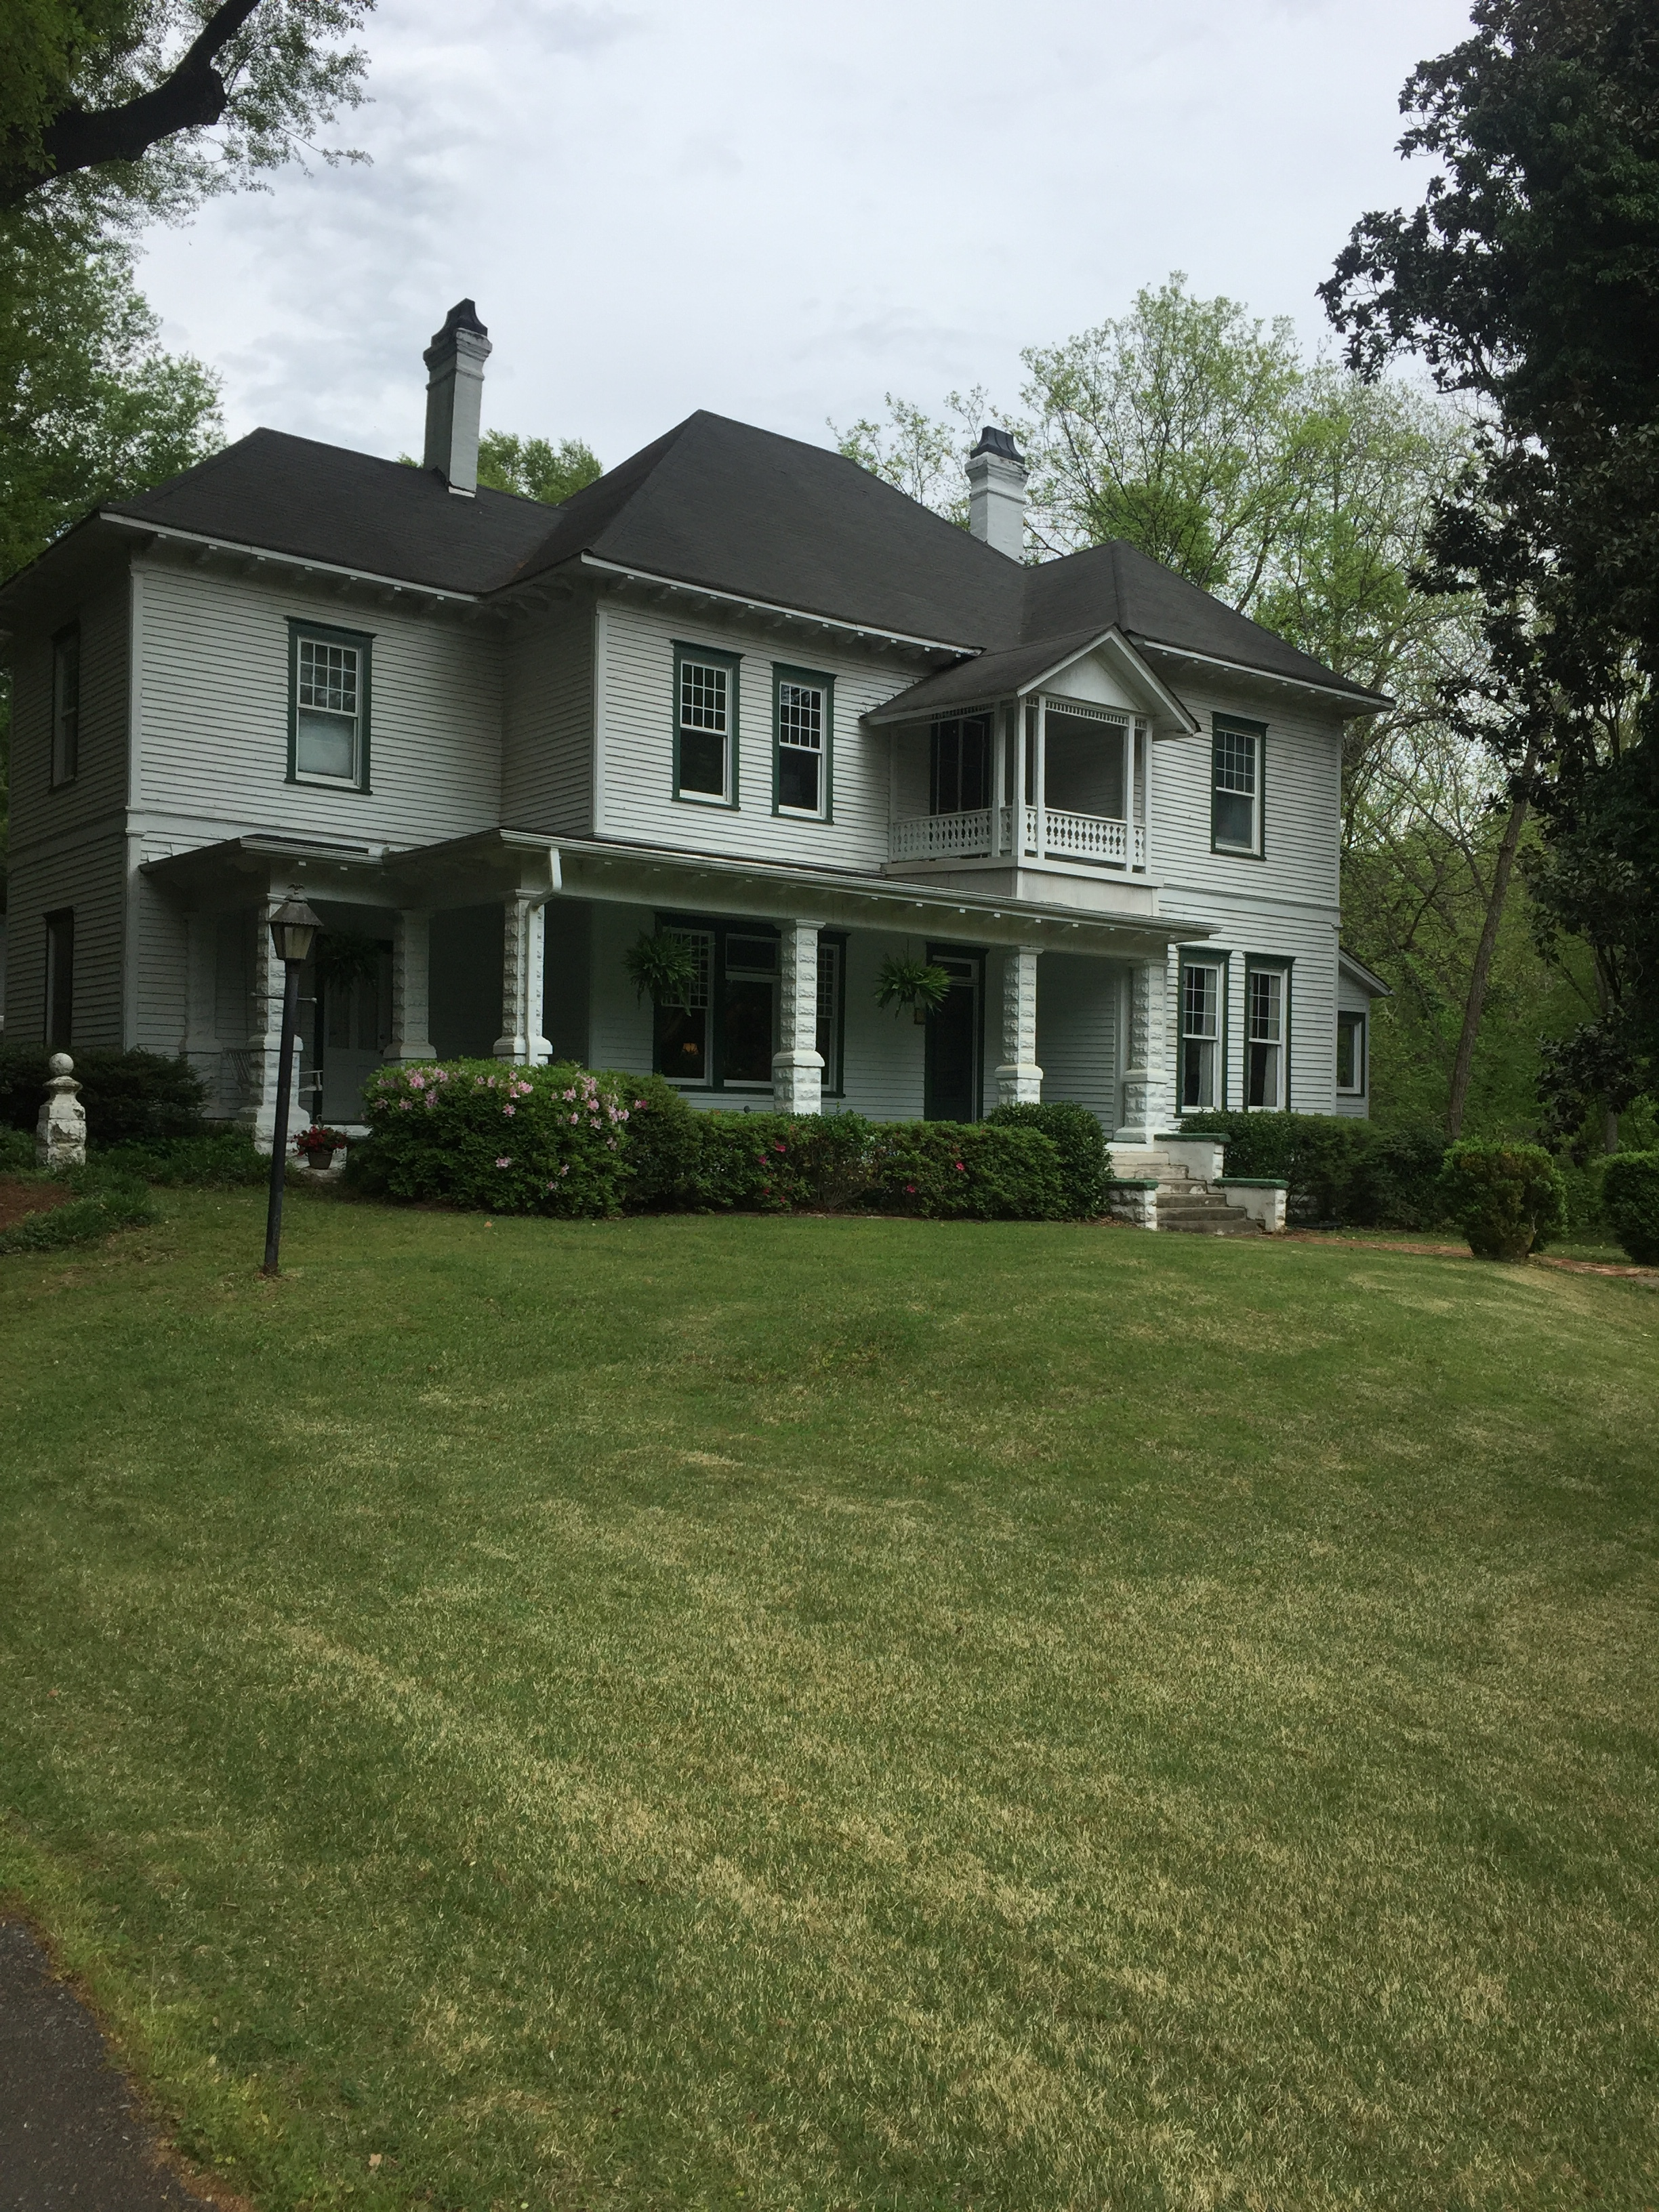 The Allegood Home